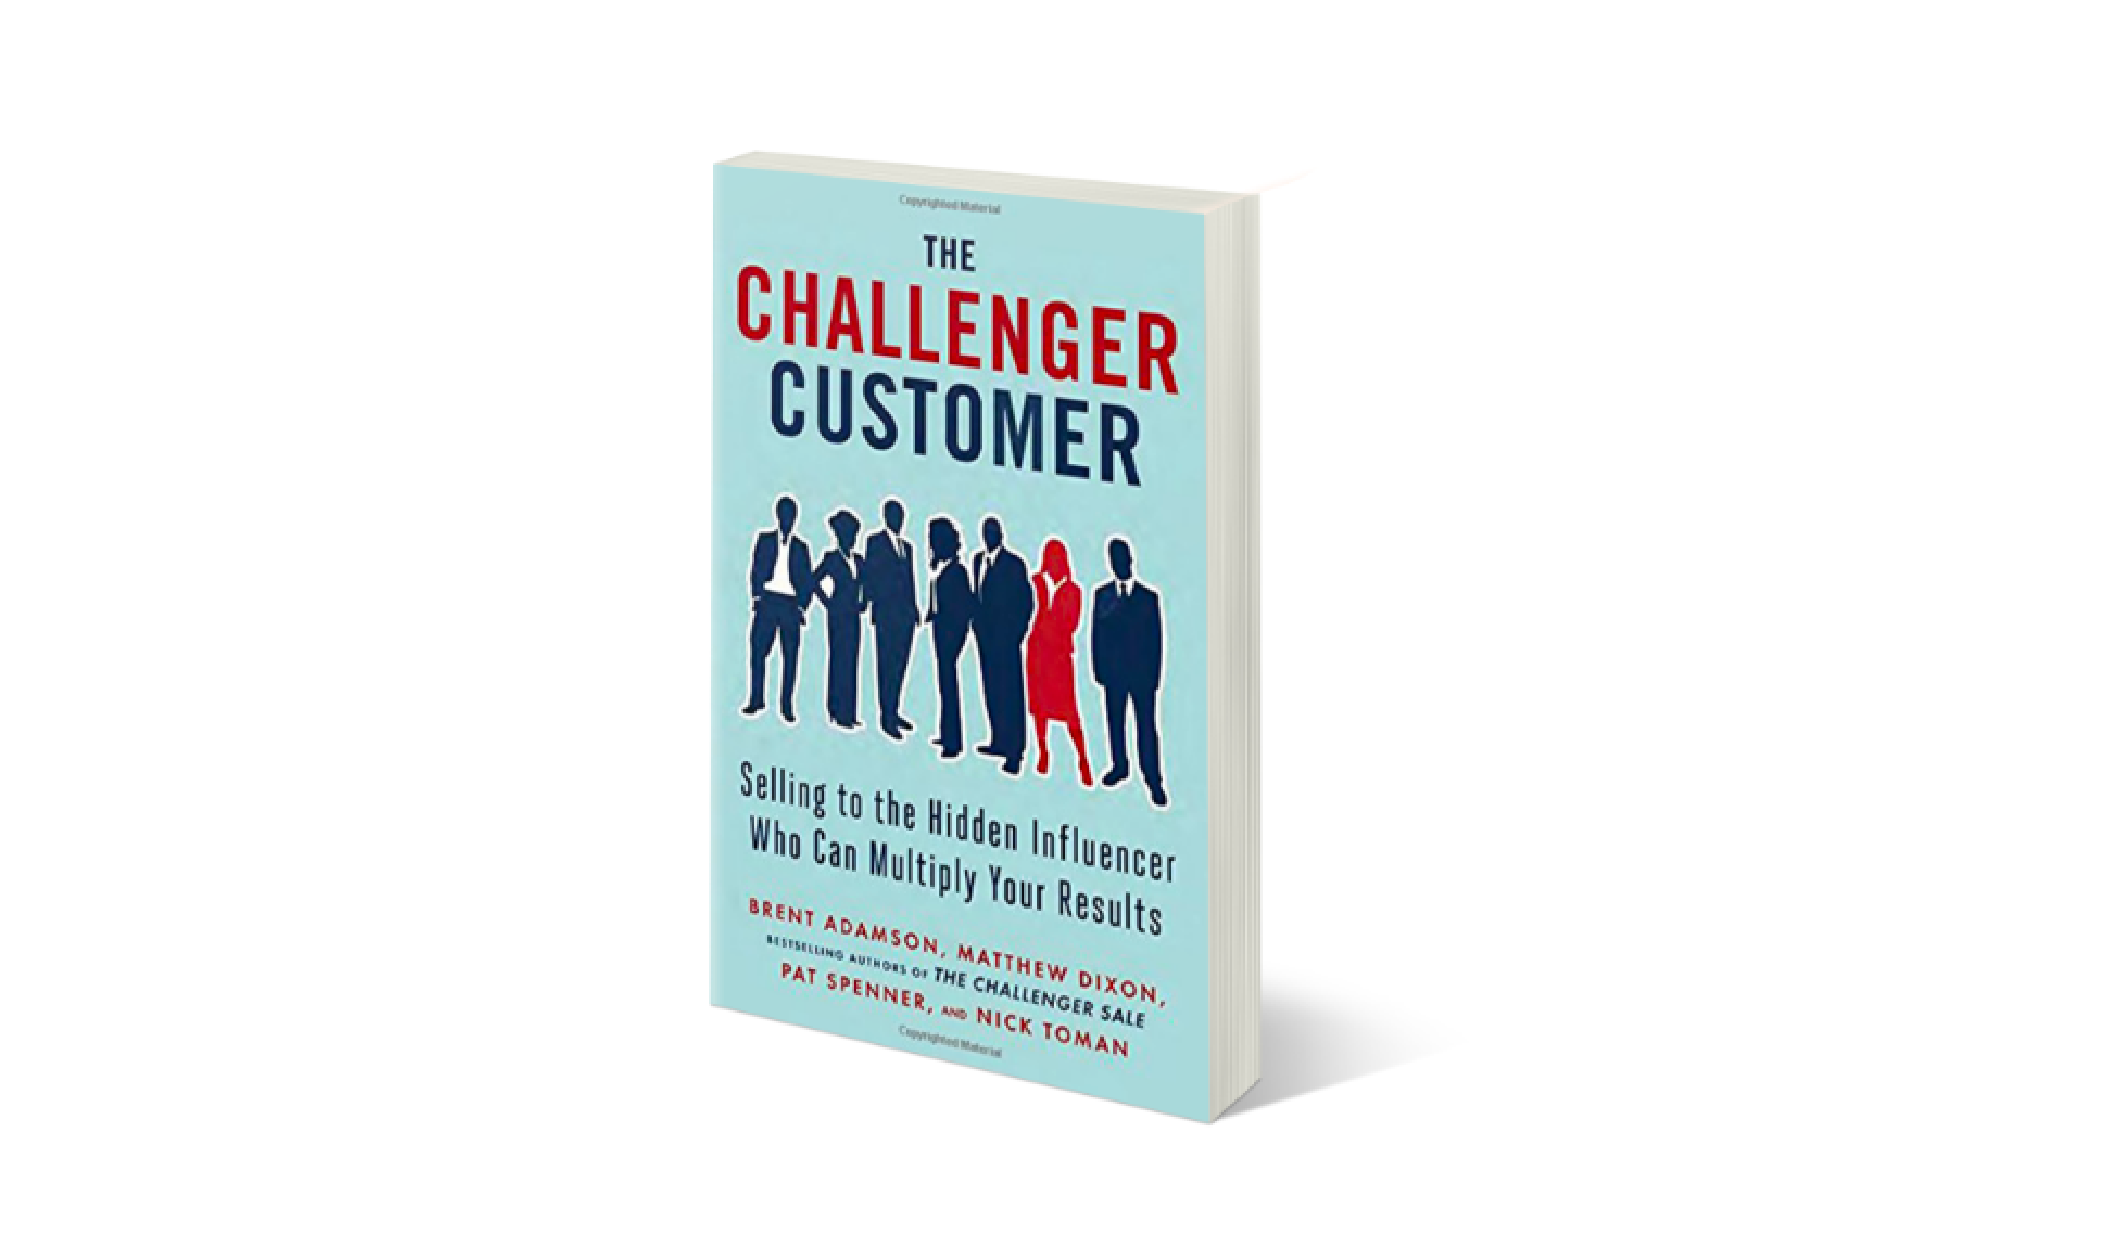 The Challenger Customer